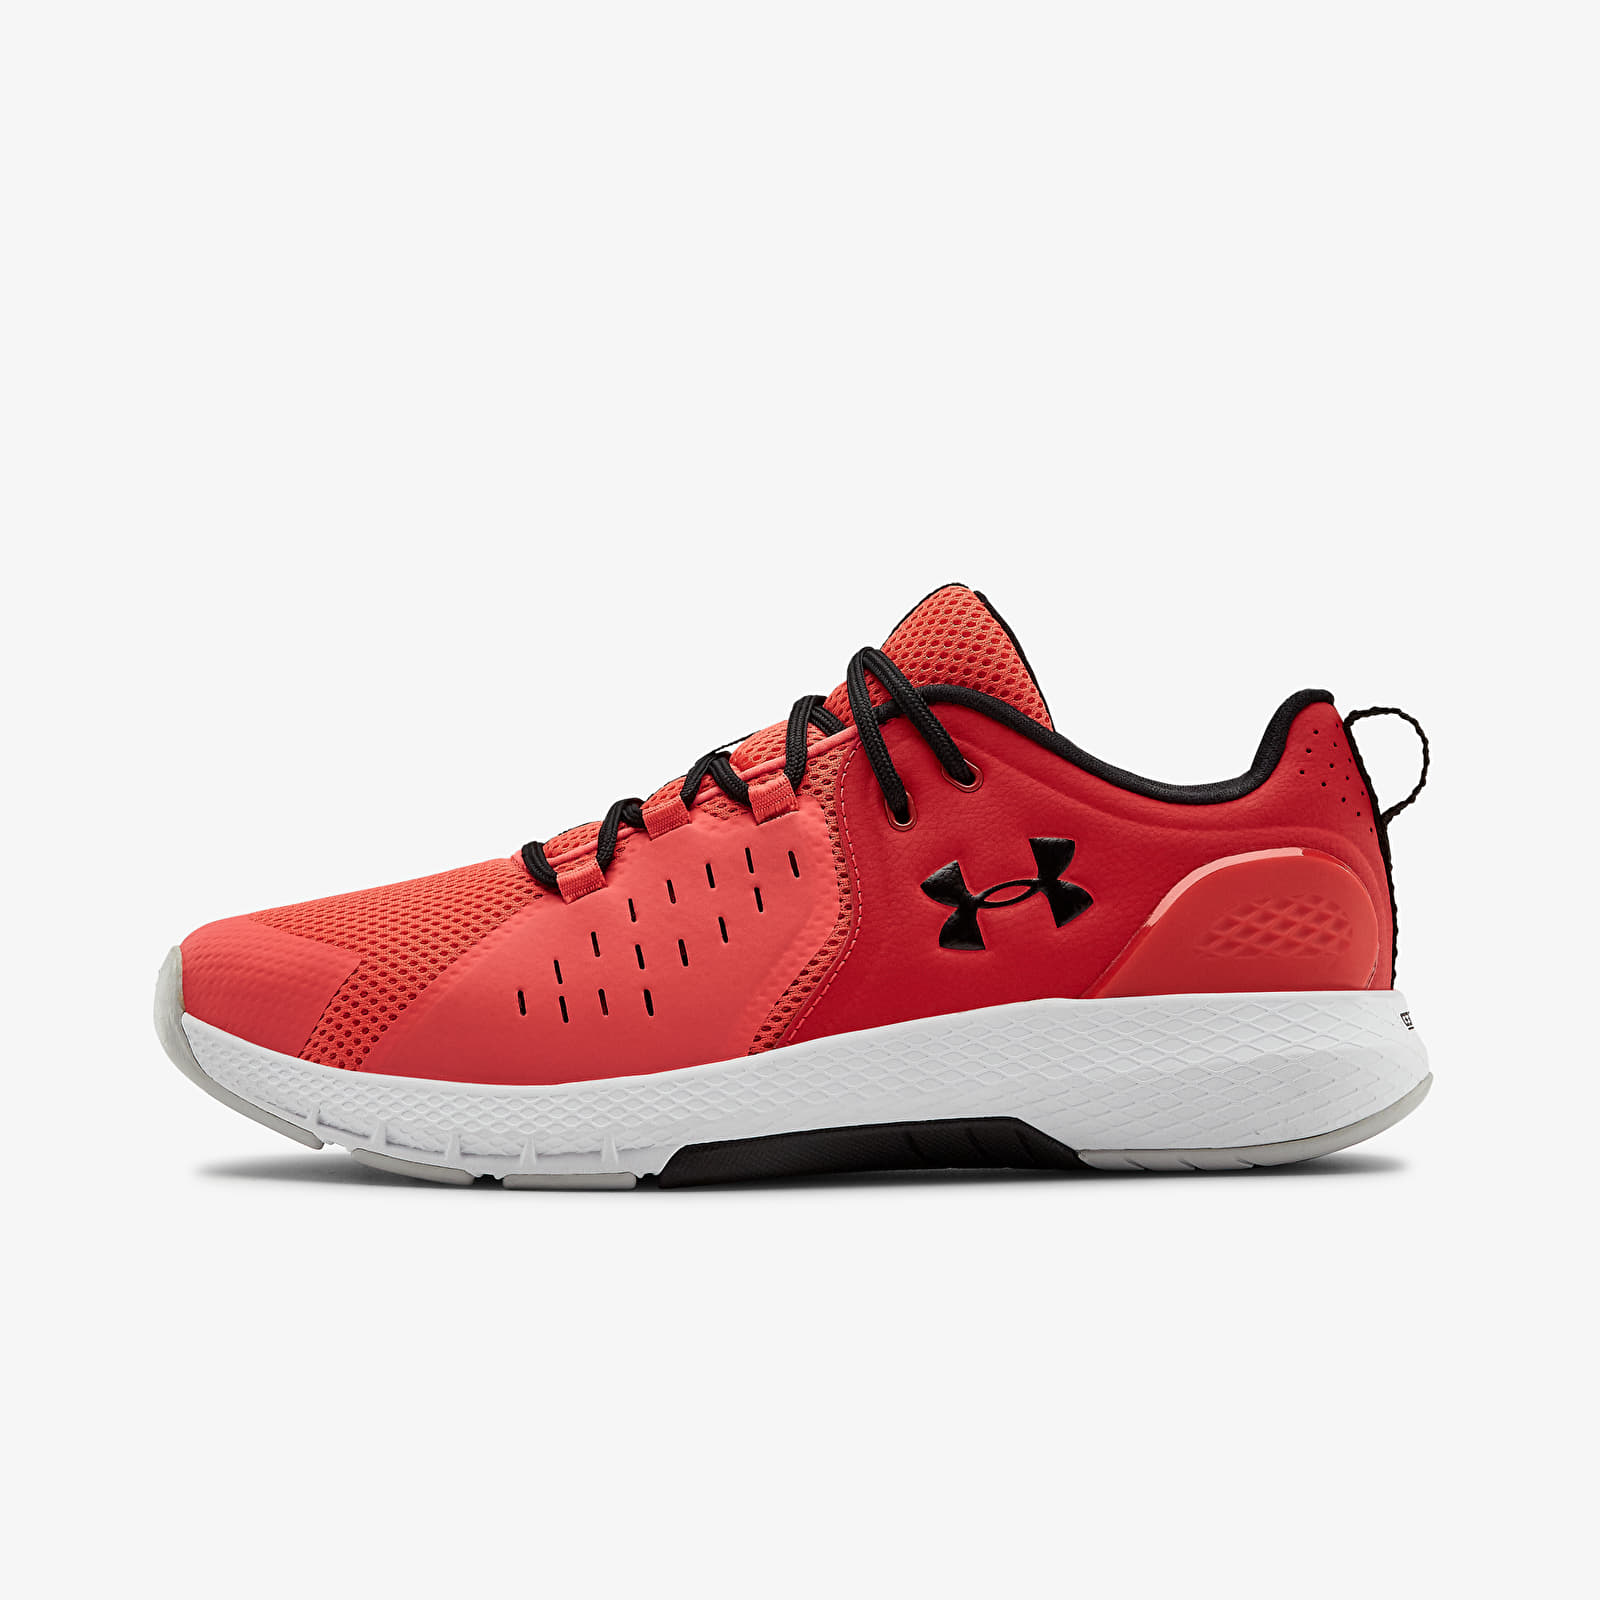 Under Armour Charged Commit TR 2